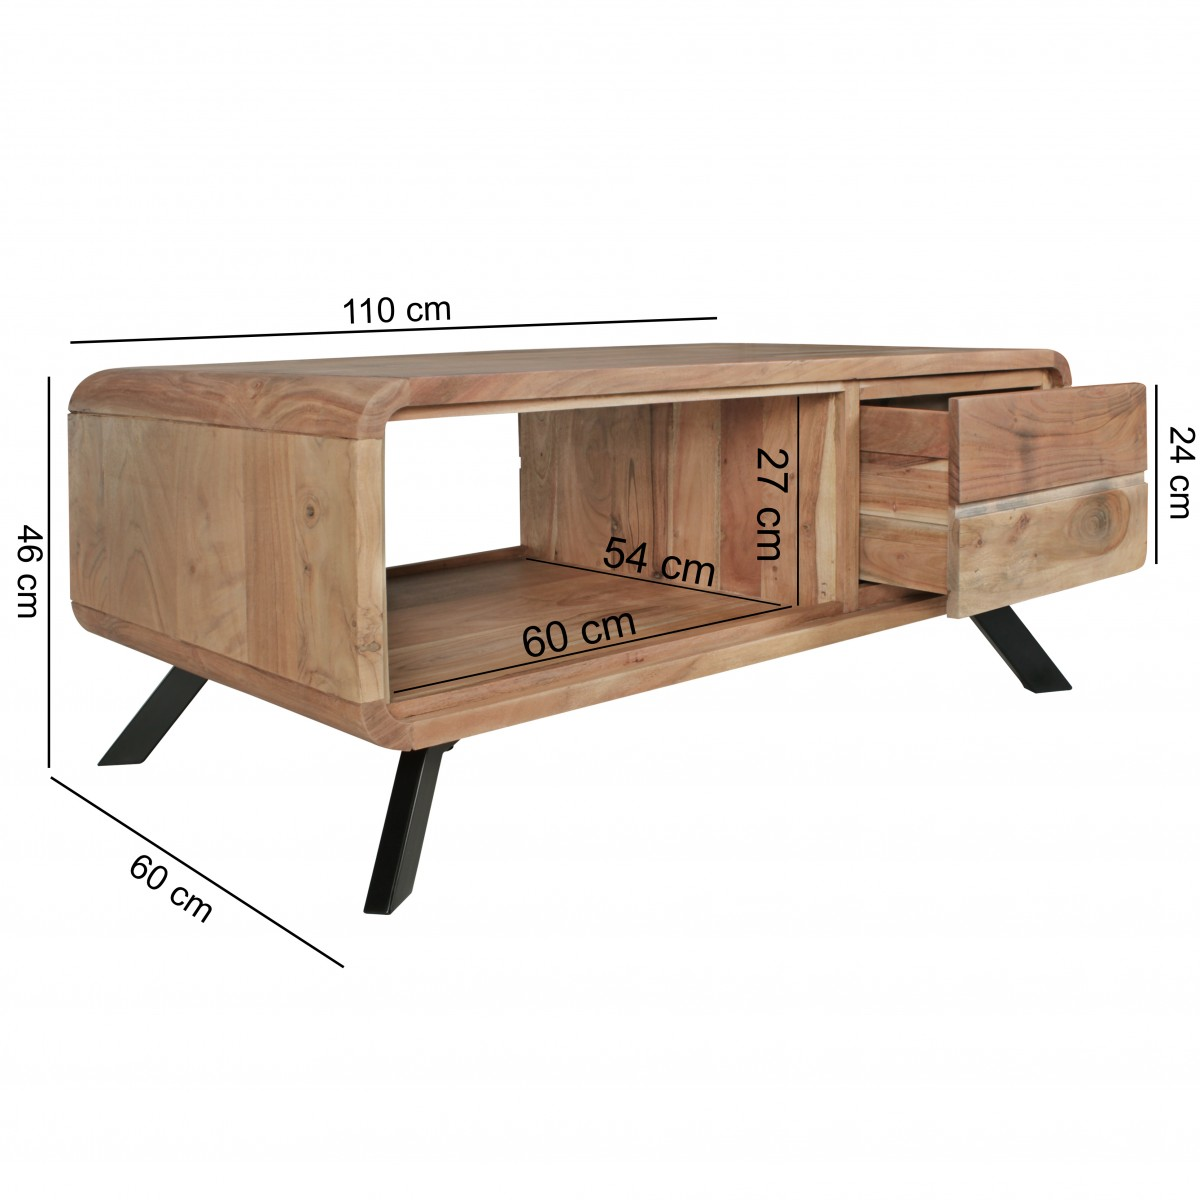 Couchtisch Glas 80 X 60 Couchtisch 80 X 60 Holz Simple Medium Size Of Metall